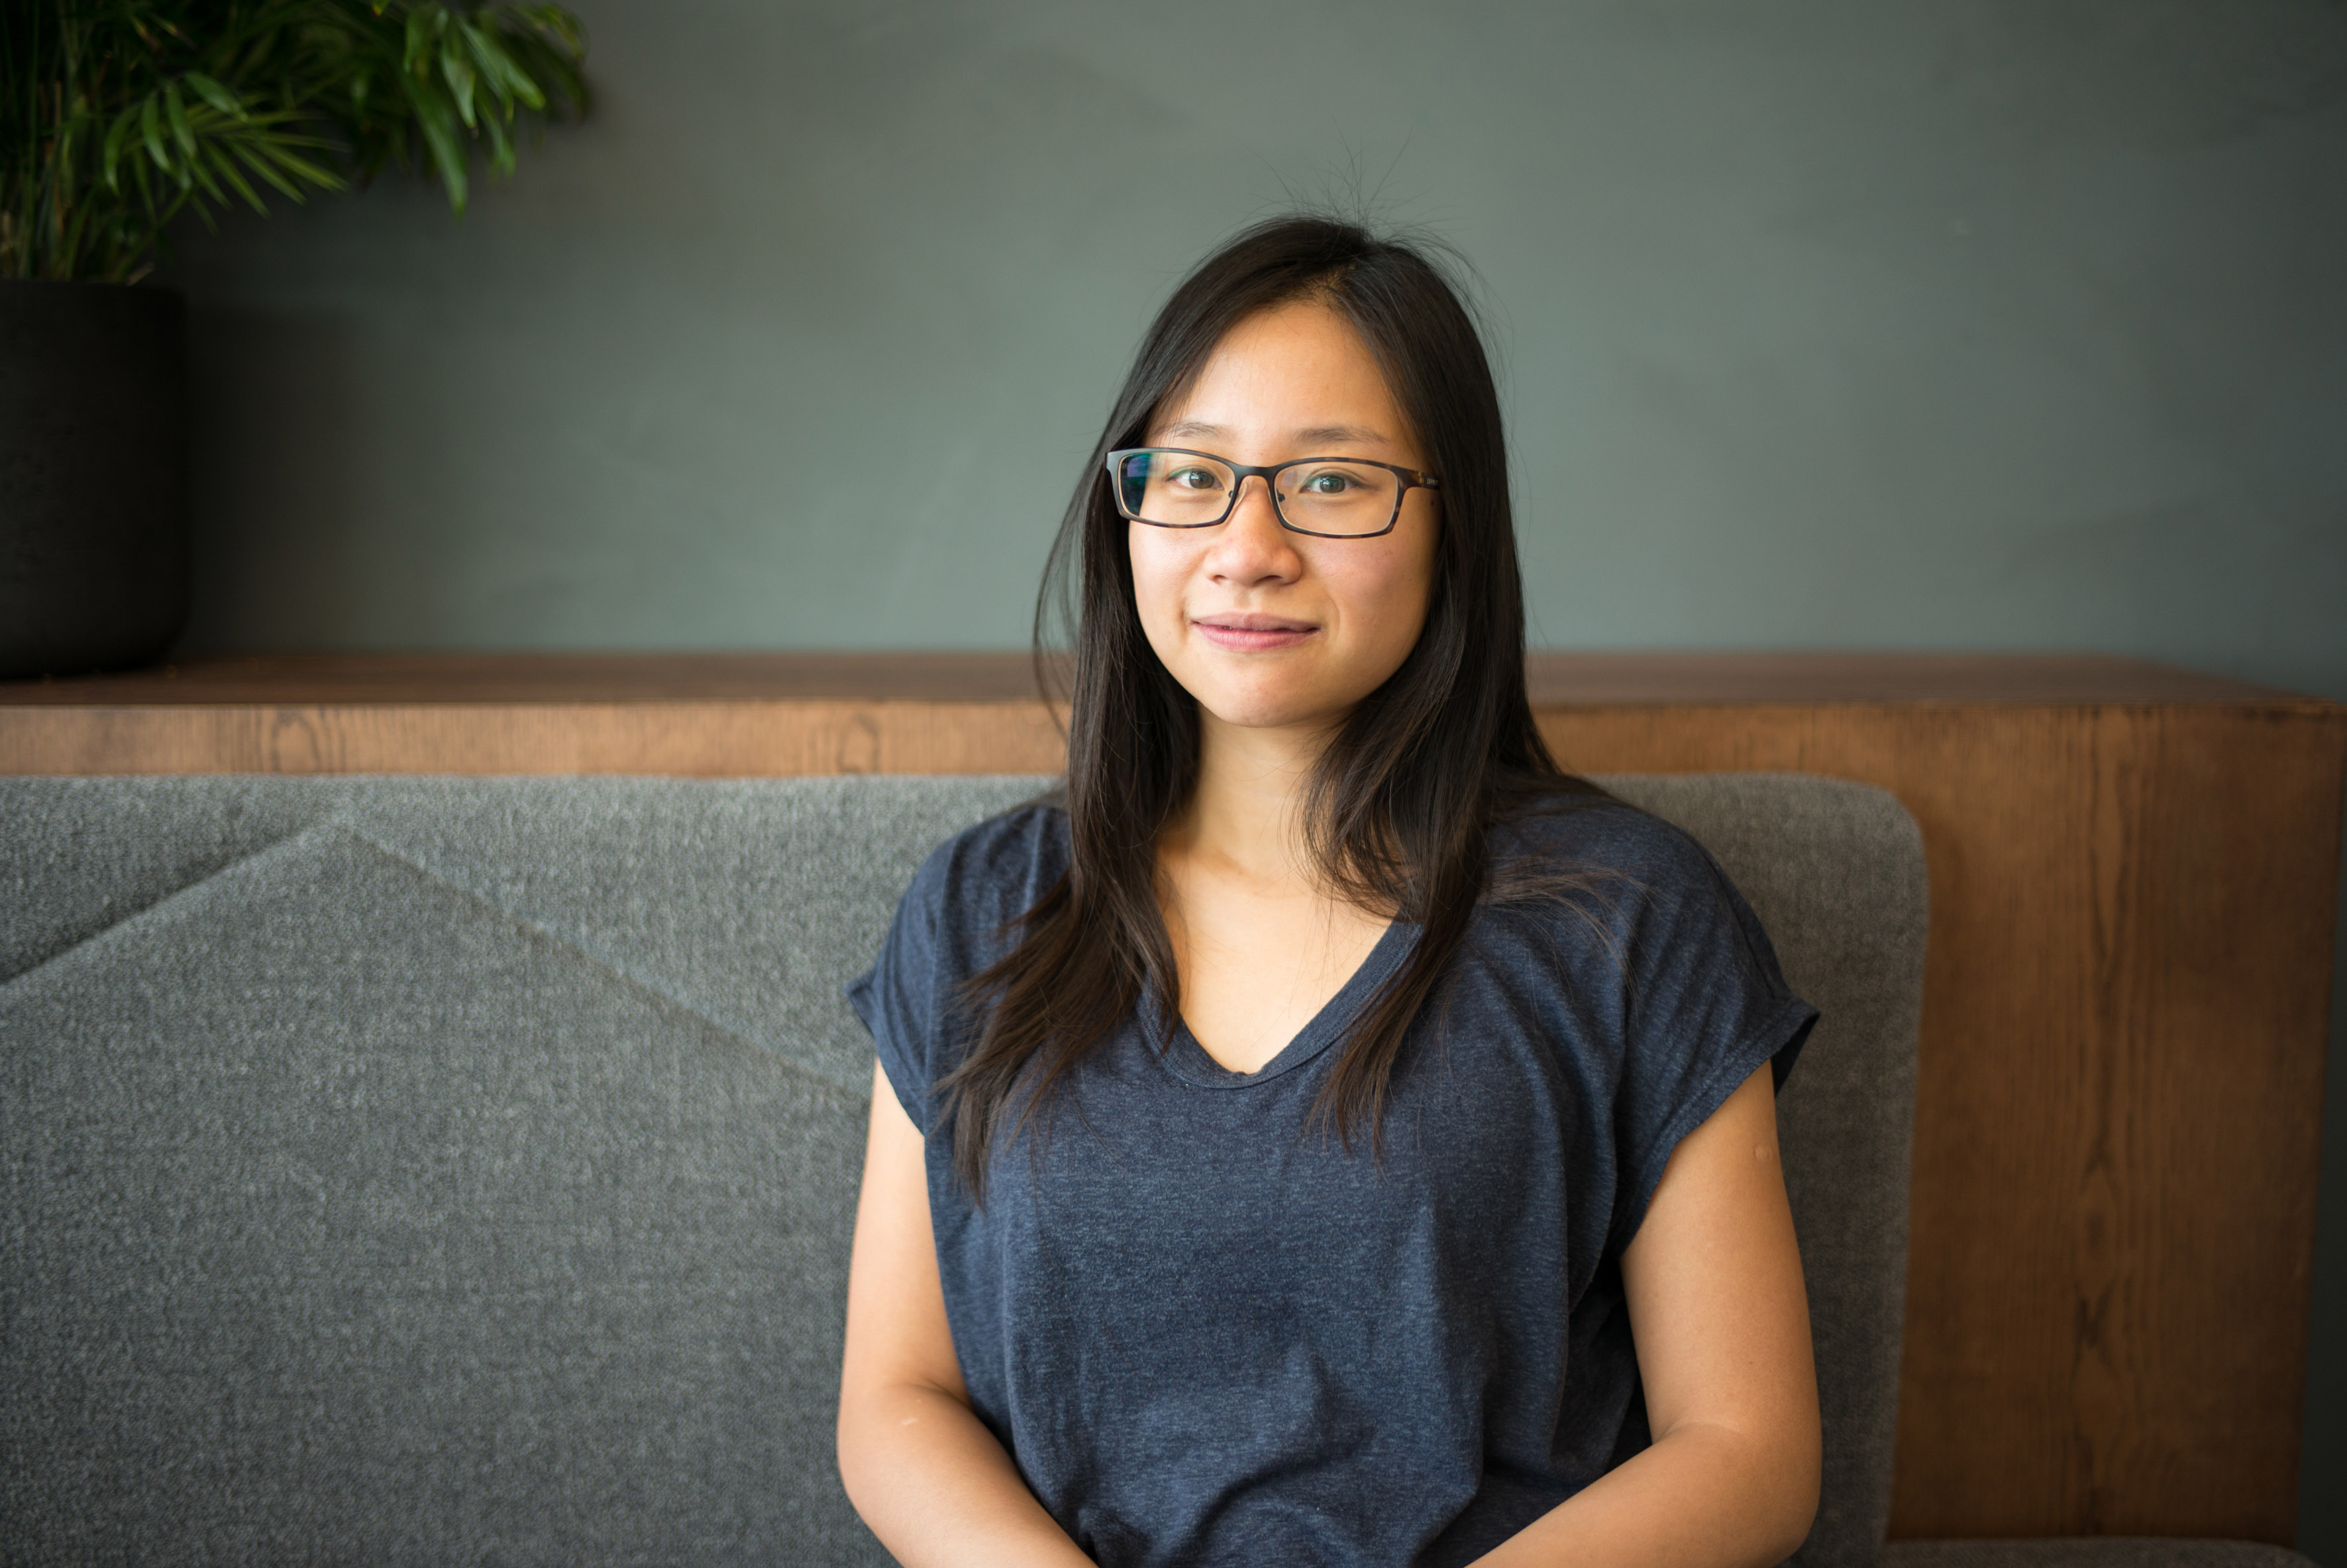 3D Repo Appoints Carmen Fan as Chief Technology Officer | 3D Repo